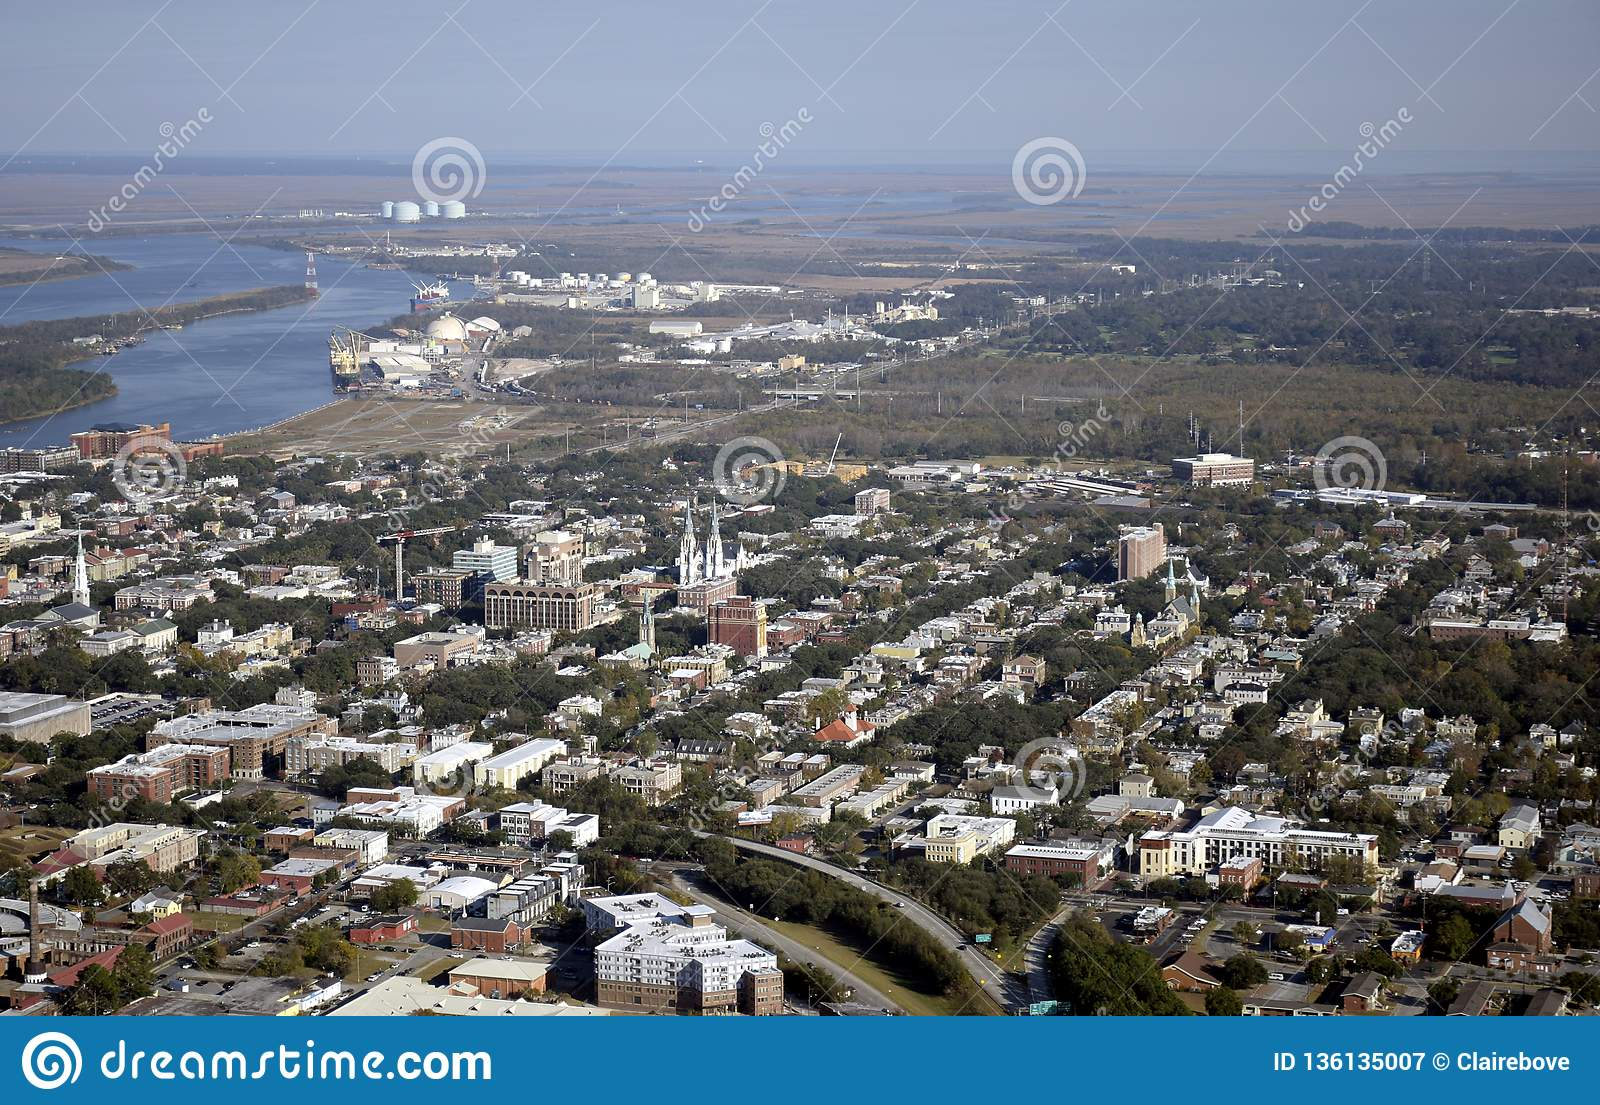 Aerial View Of Downtown Savannah Editorial Photography